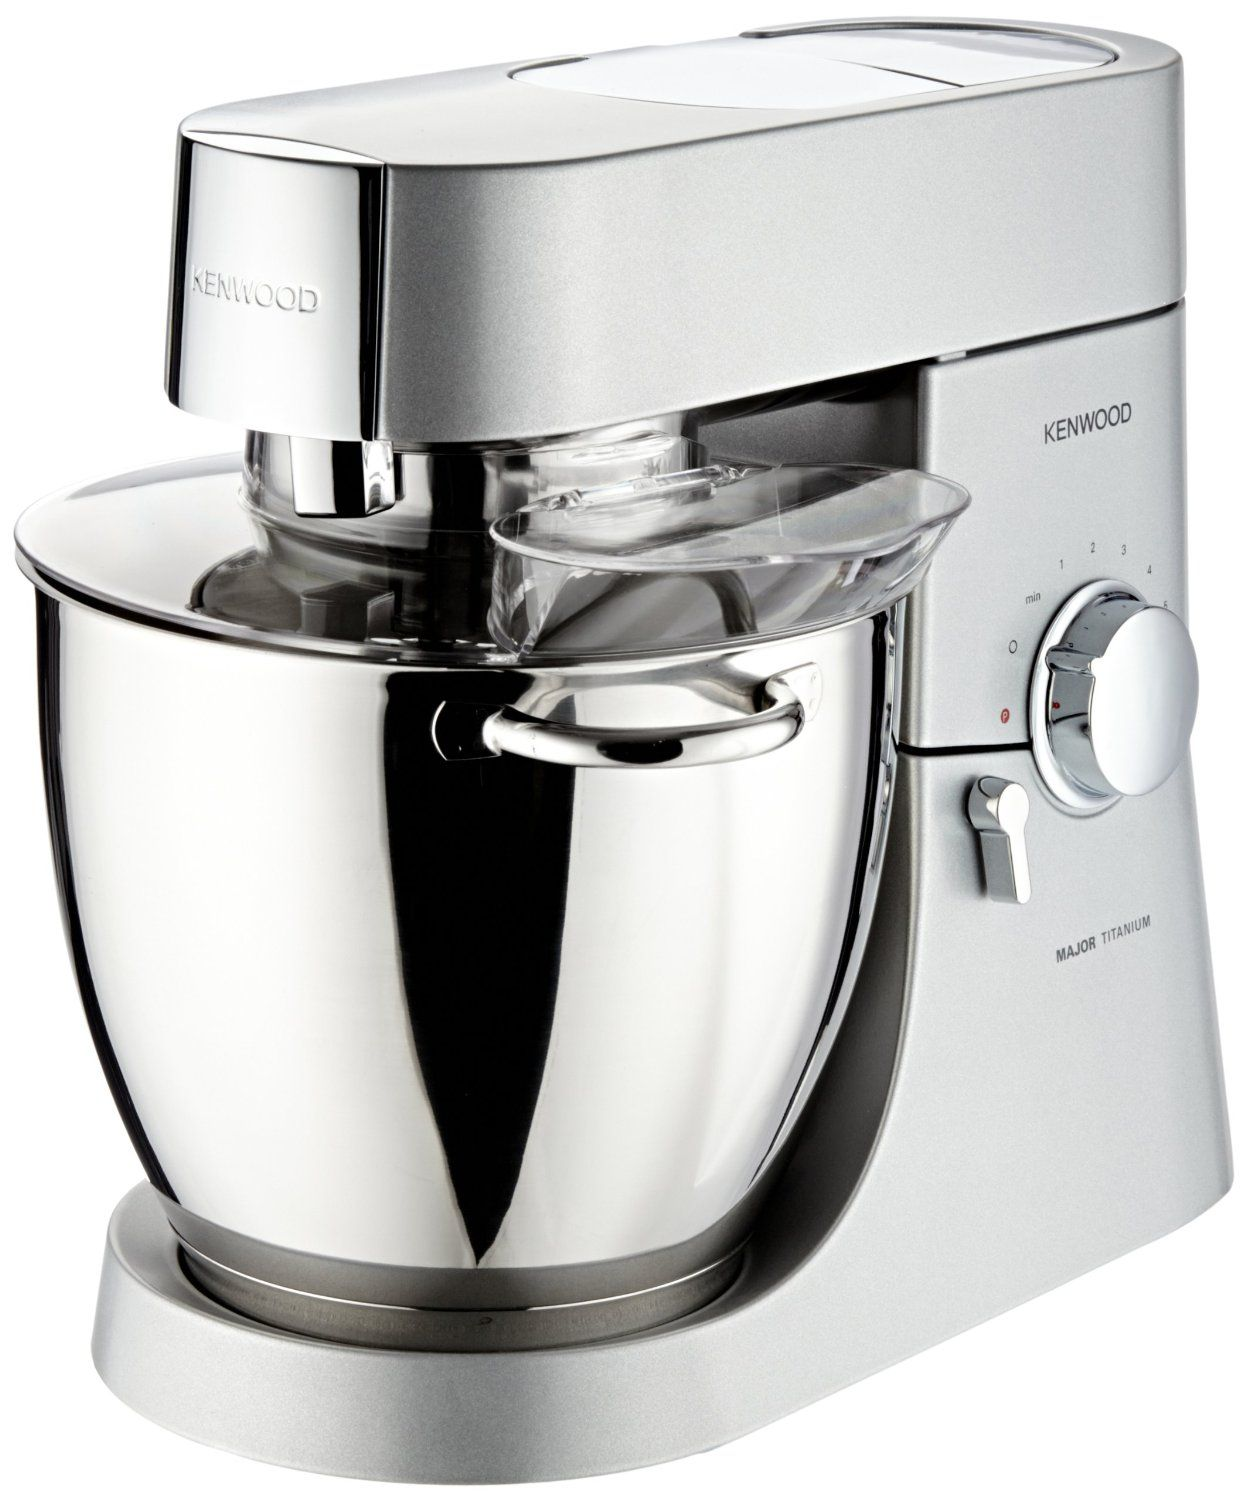 Kenwood KMM020 Major Titanium Kitchen Machine: Amazon.it: Casa e ...